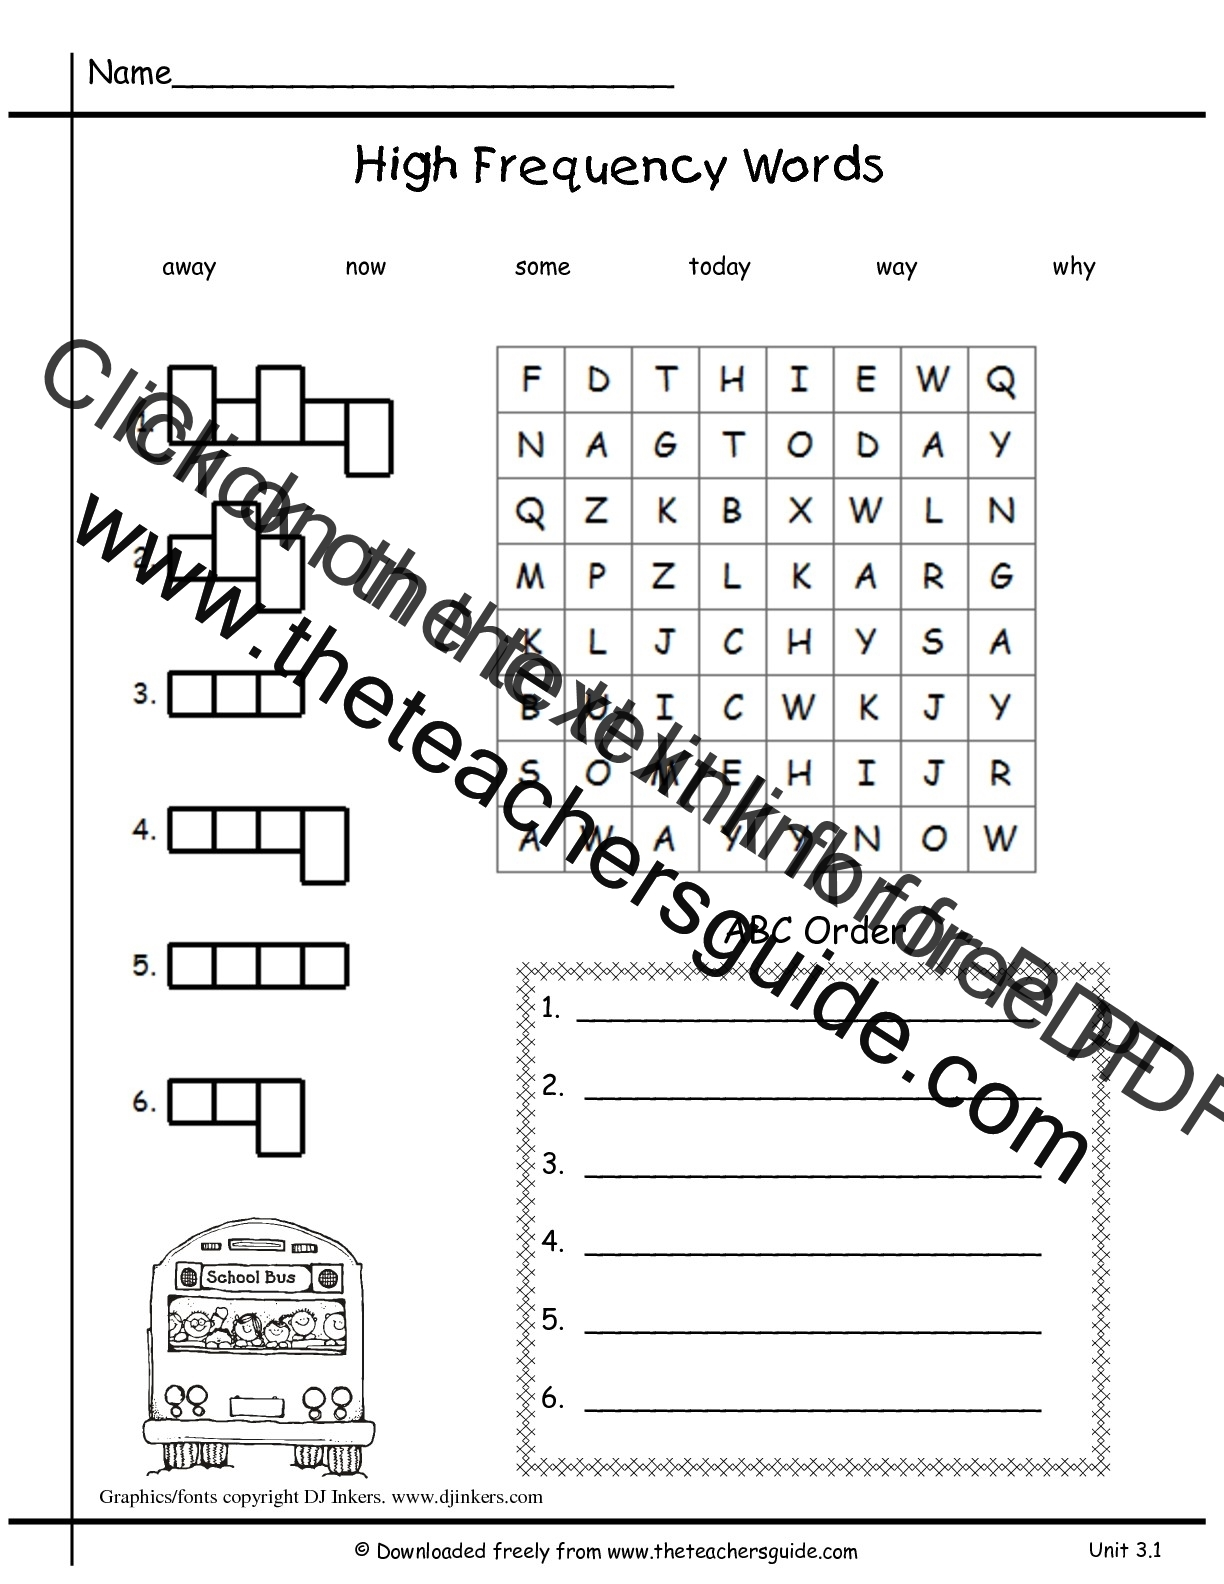 Free Worksheet Alphabetical Order Worksheet abc order template alphabetical free printable worksheets for 1st grade kids